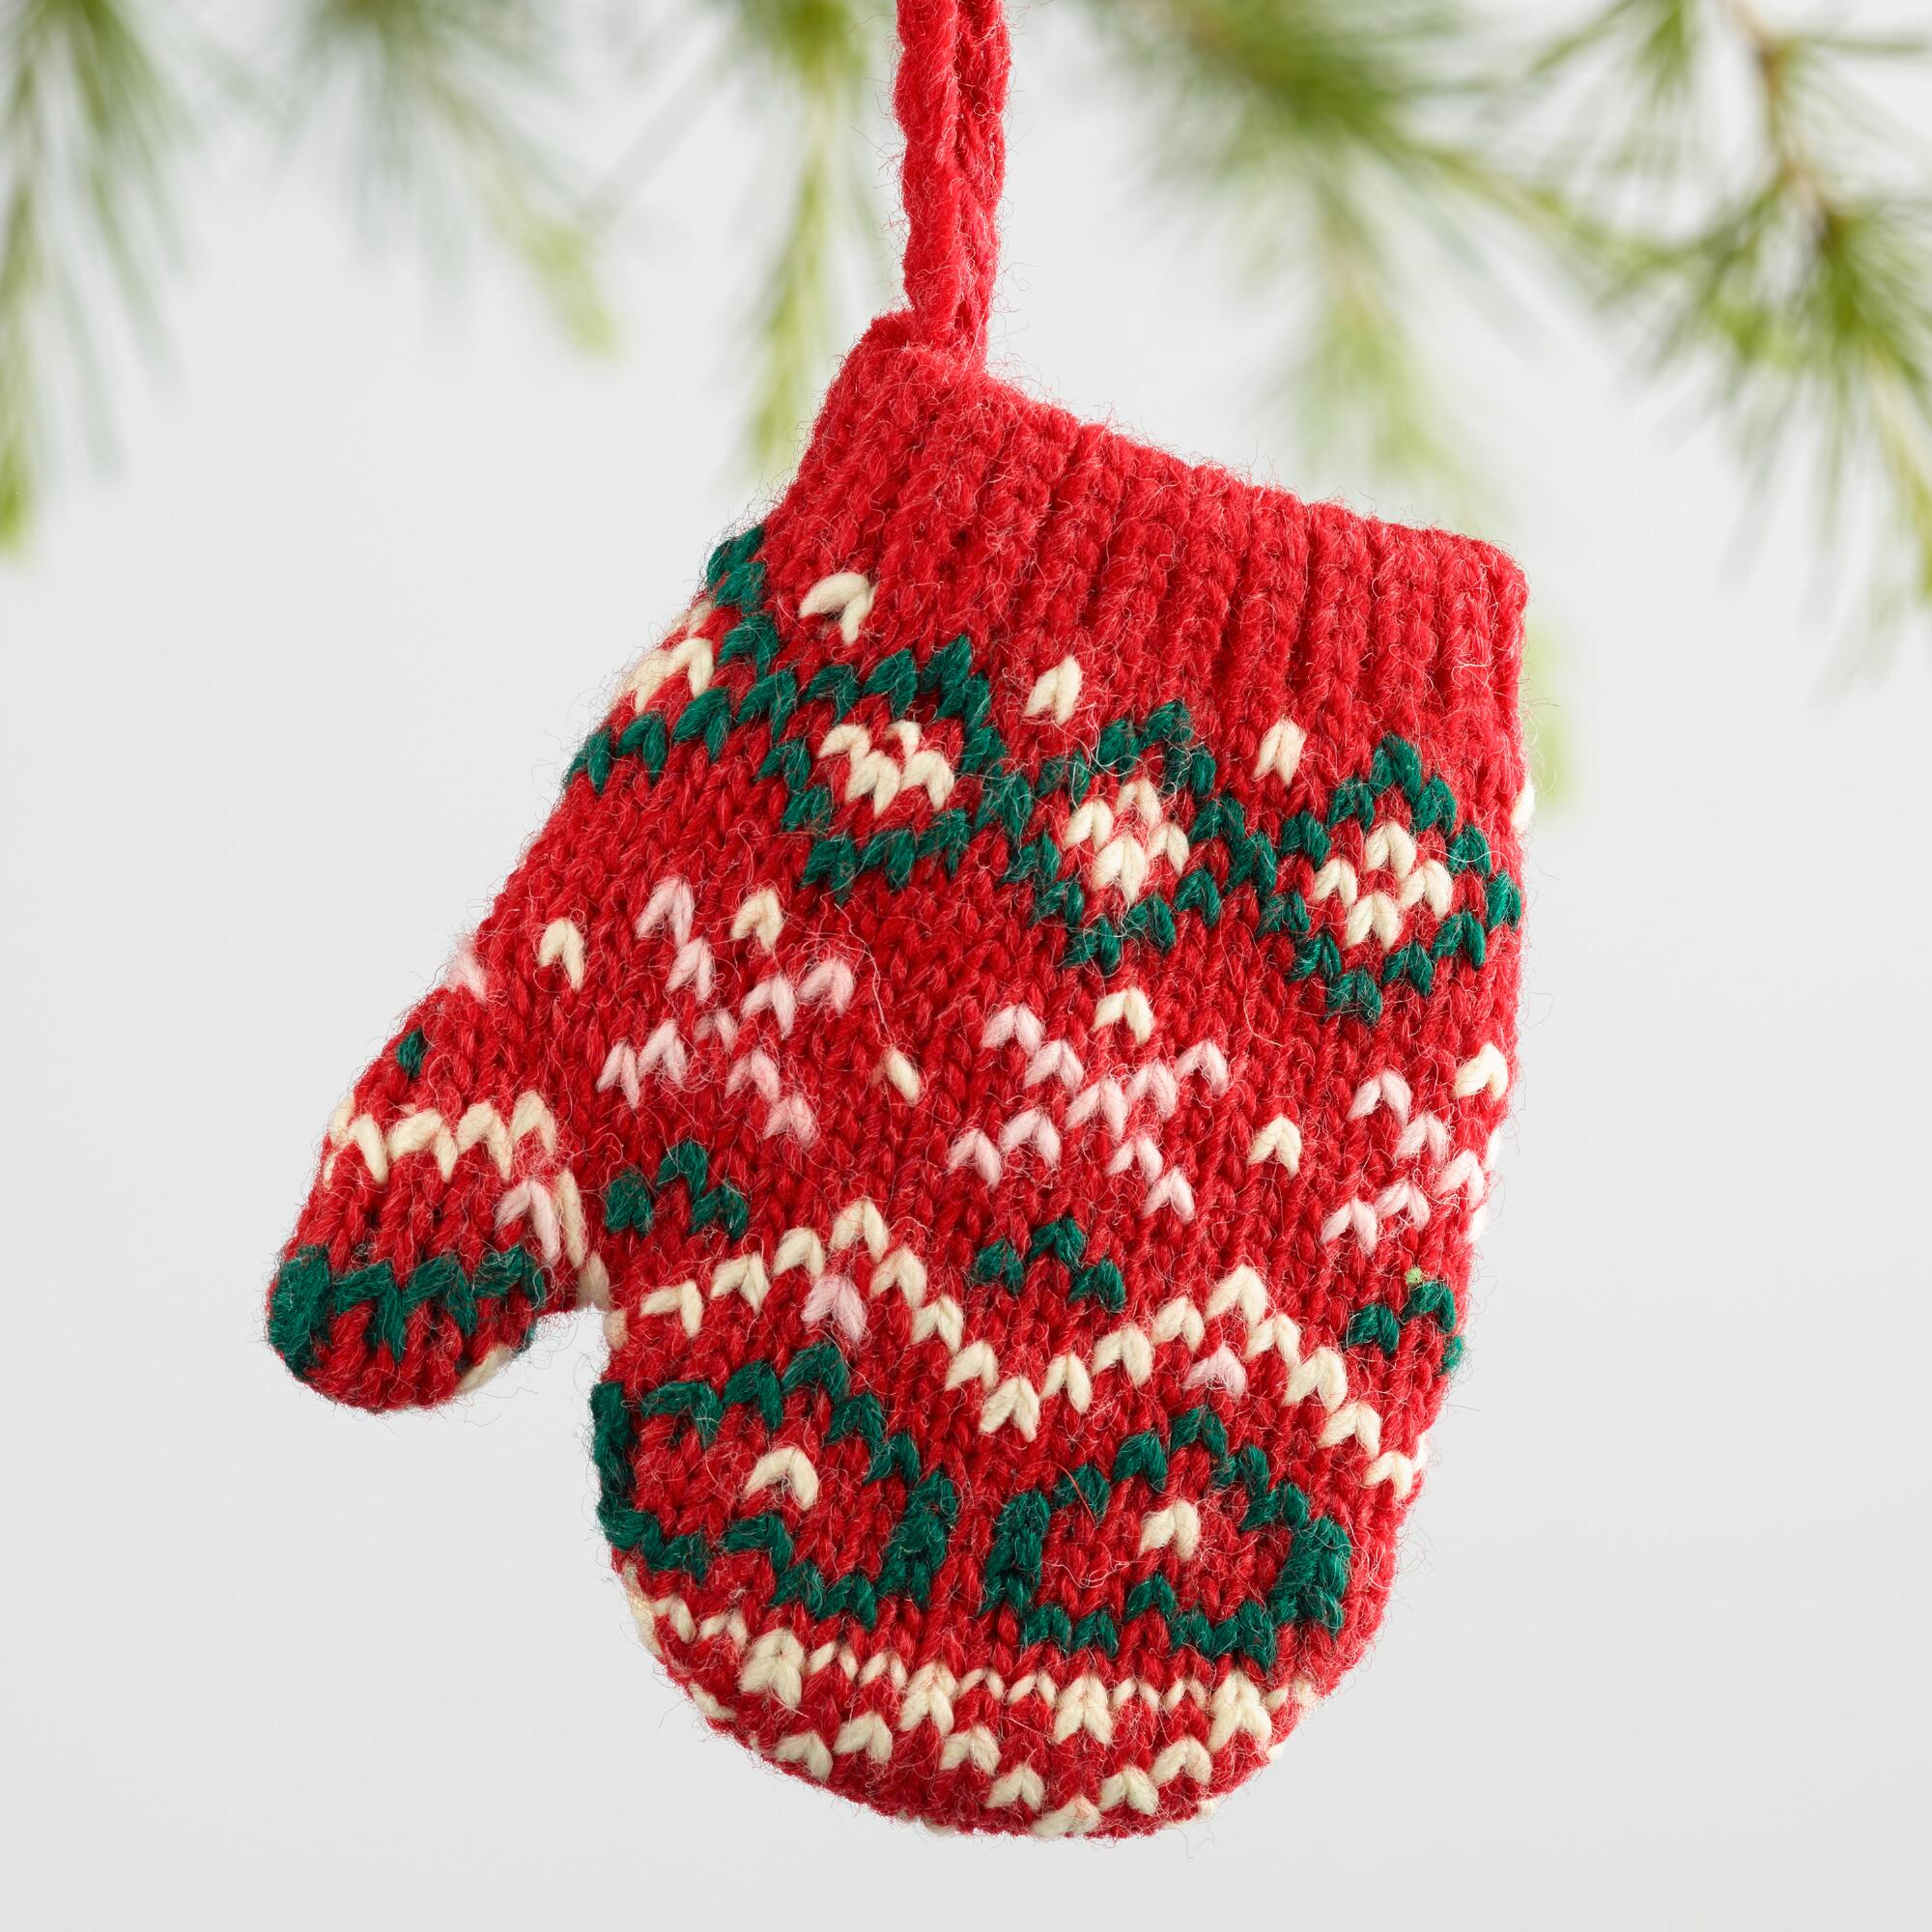 Knitted Christmas Decorations To Buy : Knit mitten ornaments set of world market